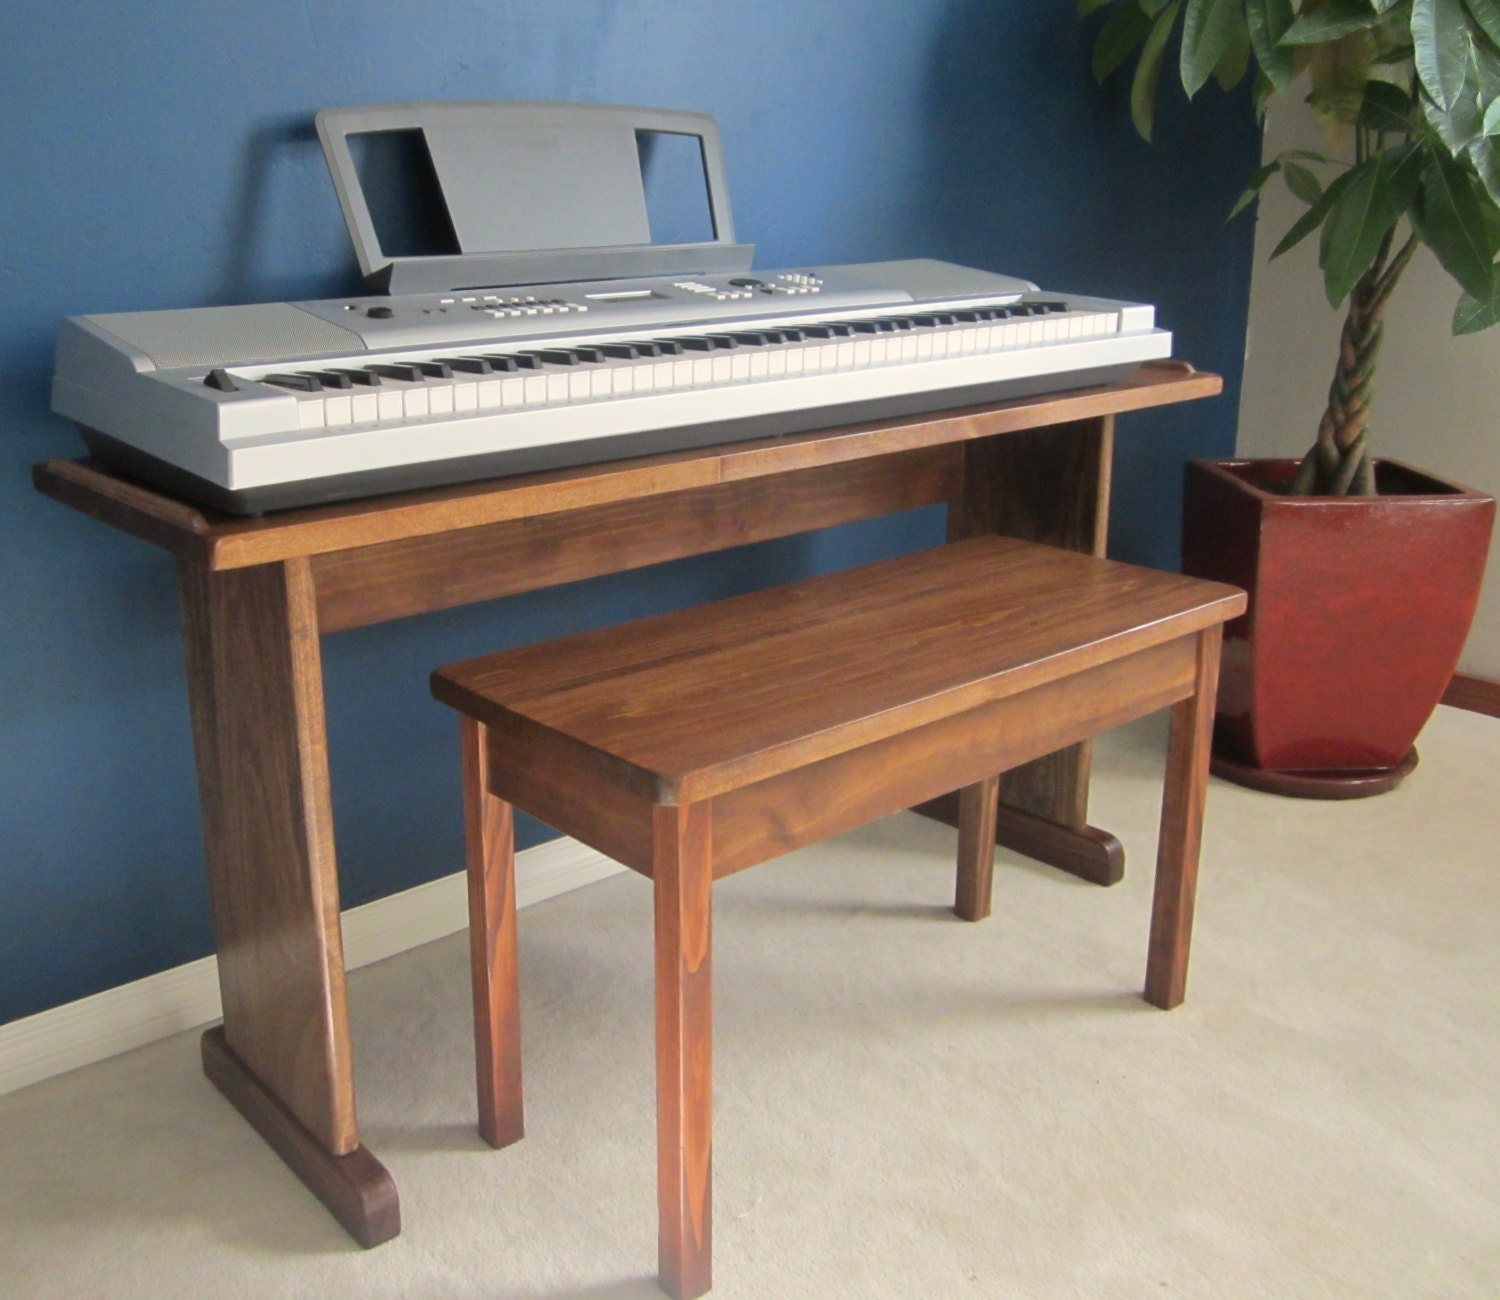 Items similar to custom keyboard stand and bench steady Keyboard stand and bench